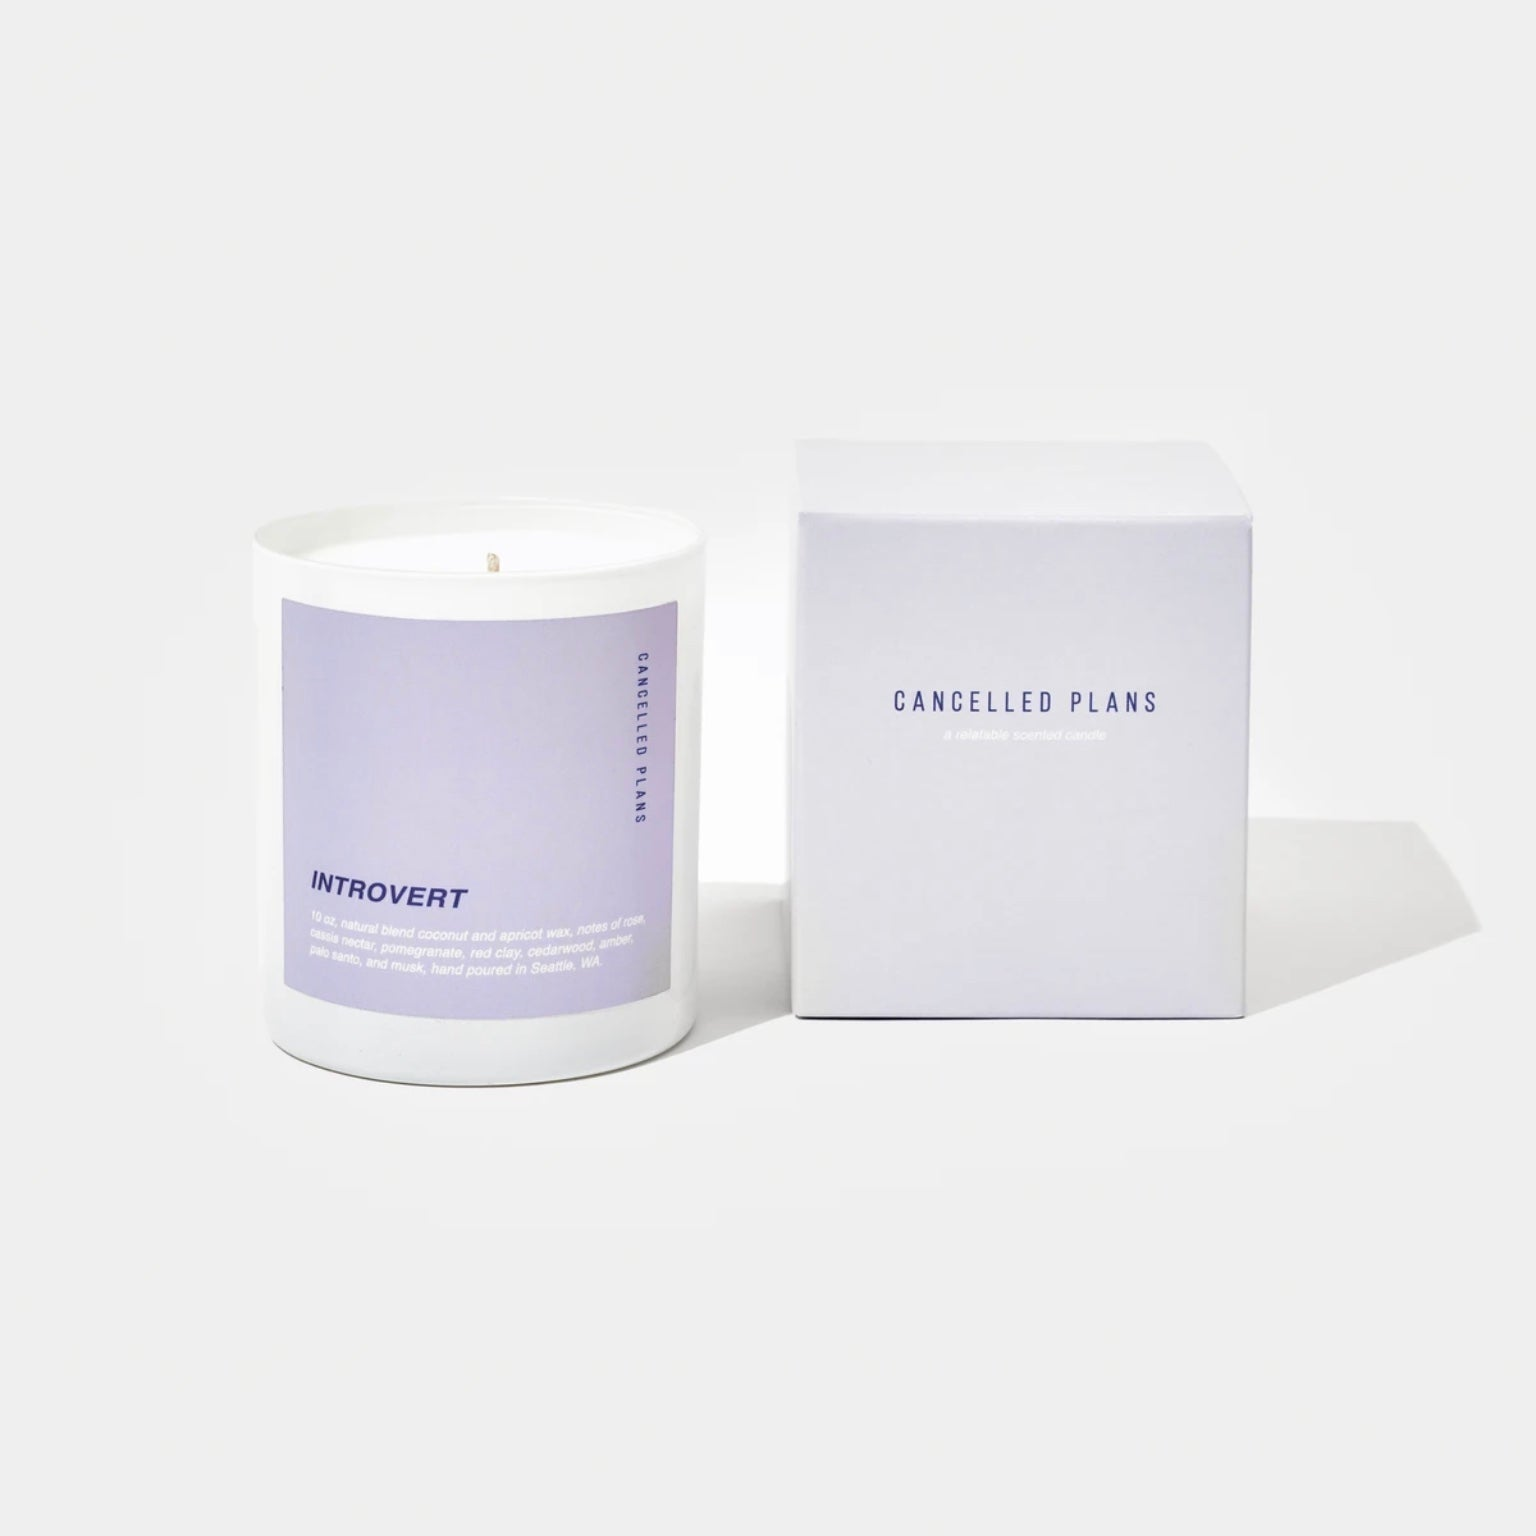 Cancelled Plans Candles - Introvert